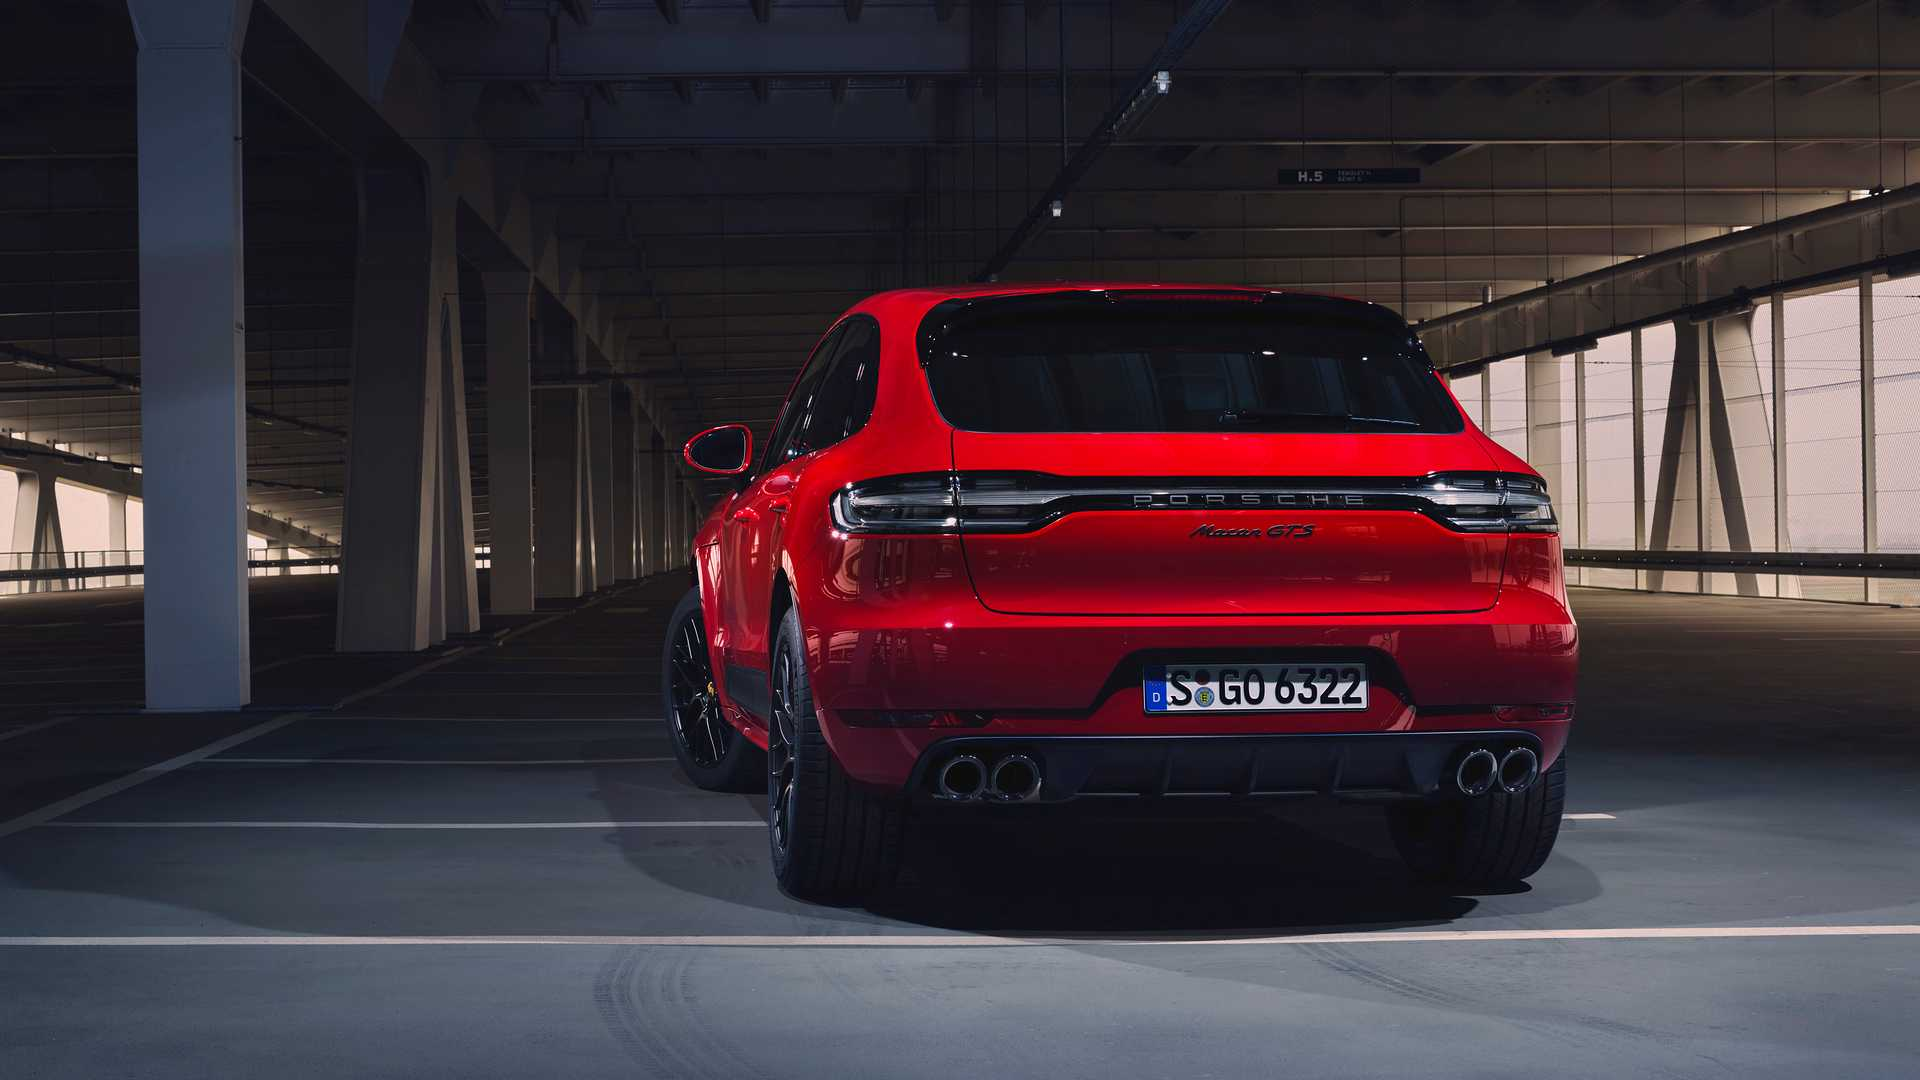 2020 Porsche Macan Gts Debuts With More Power 71 300 Price Tag